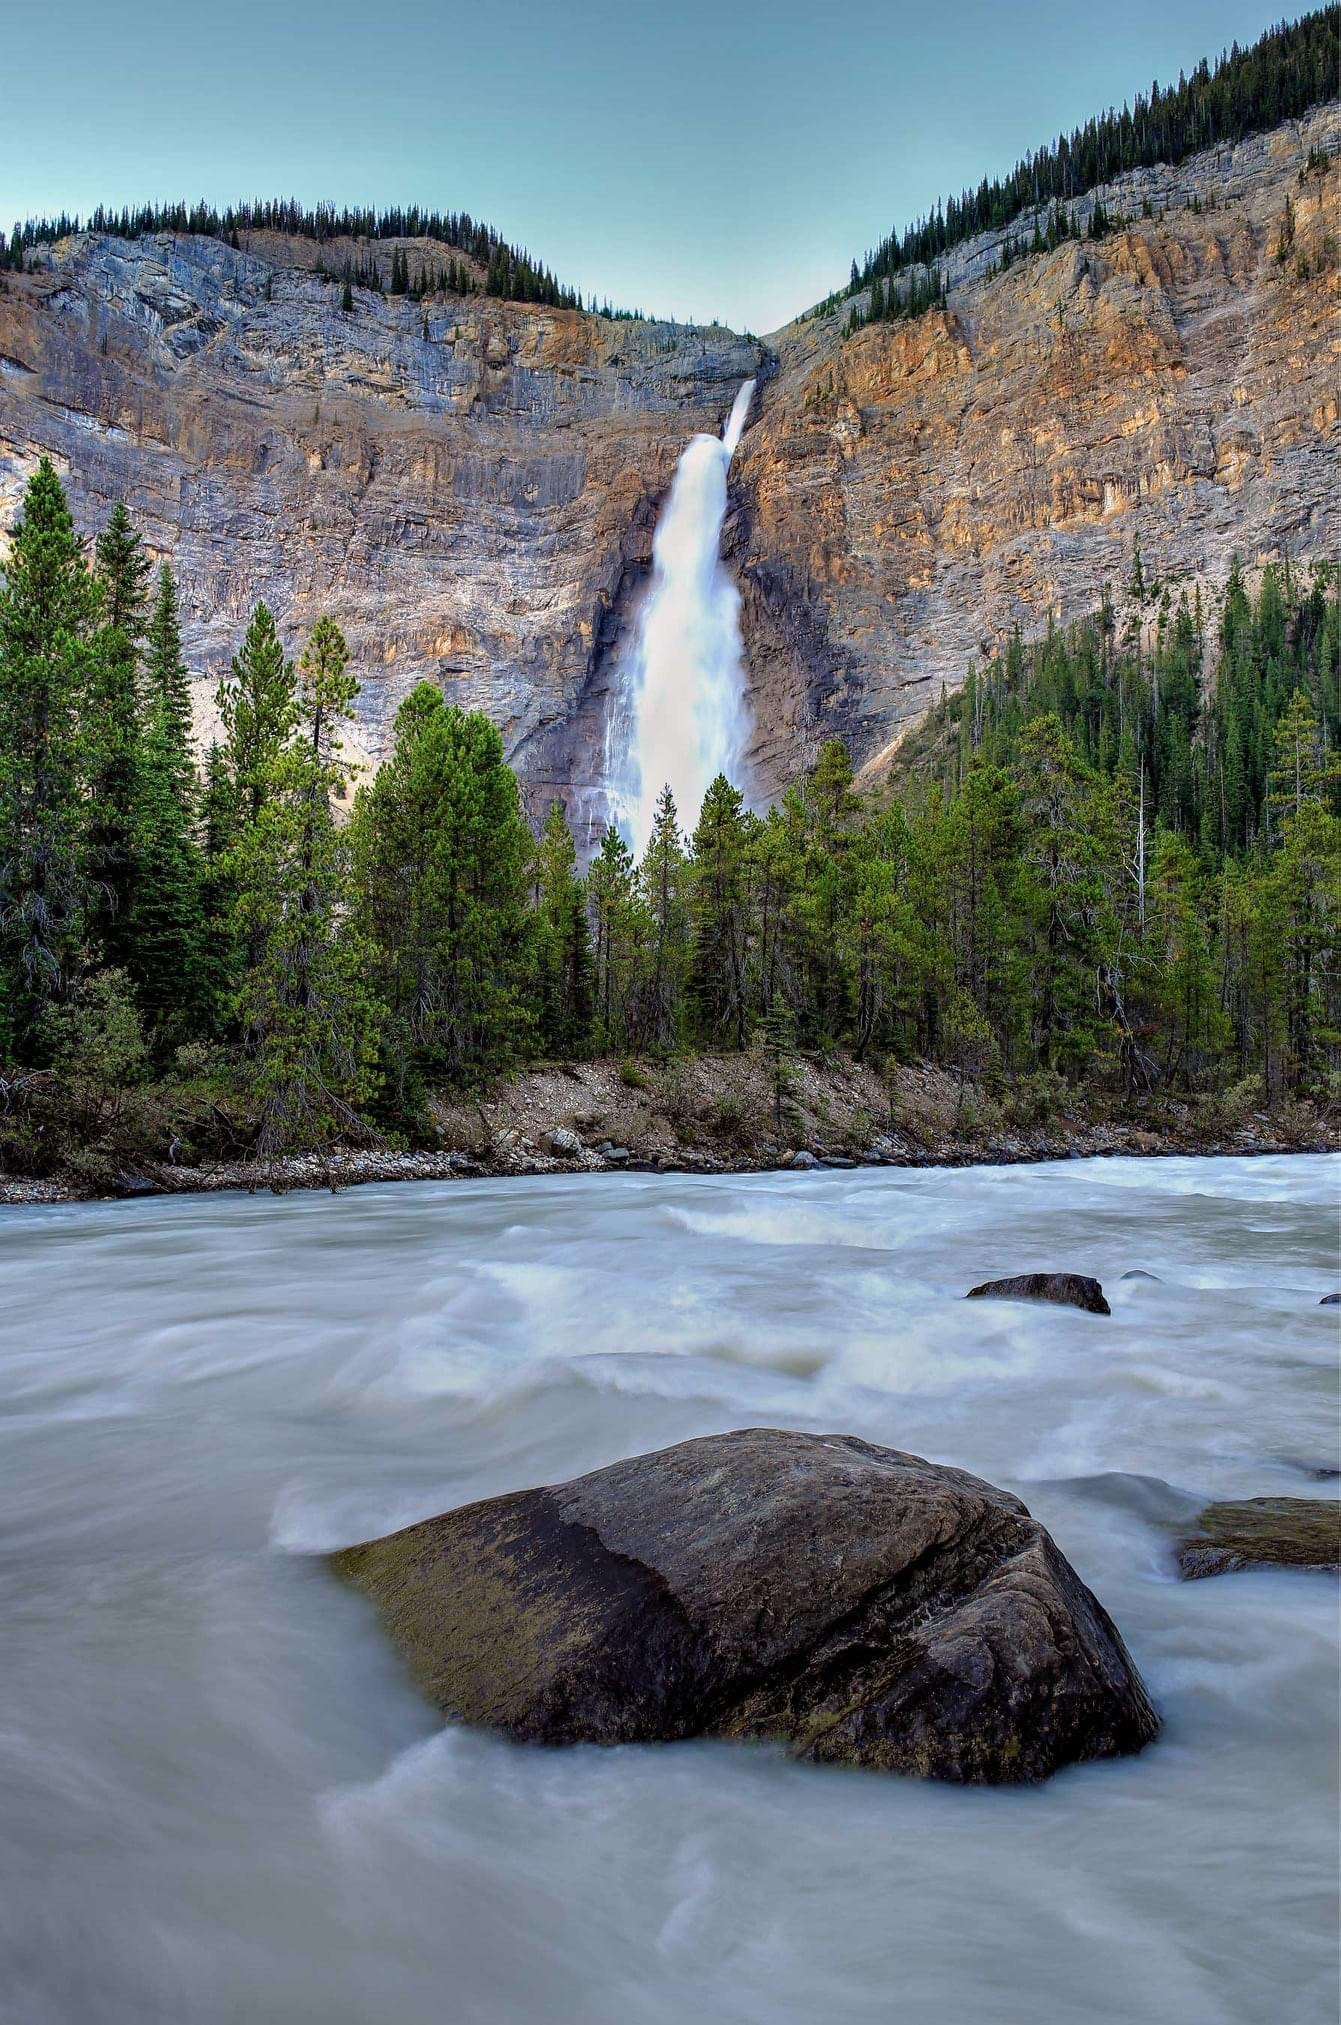 Takakkaw Falls and the Yoho River